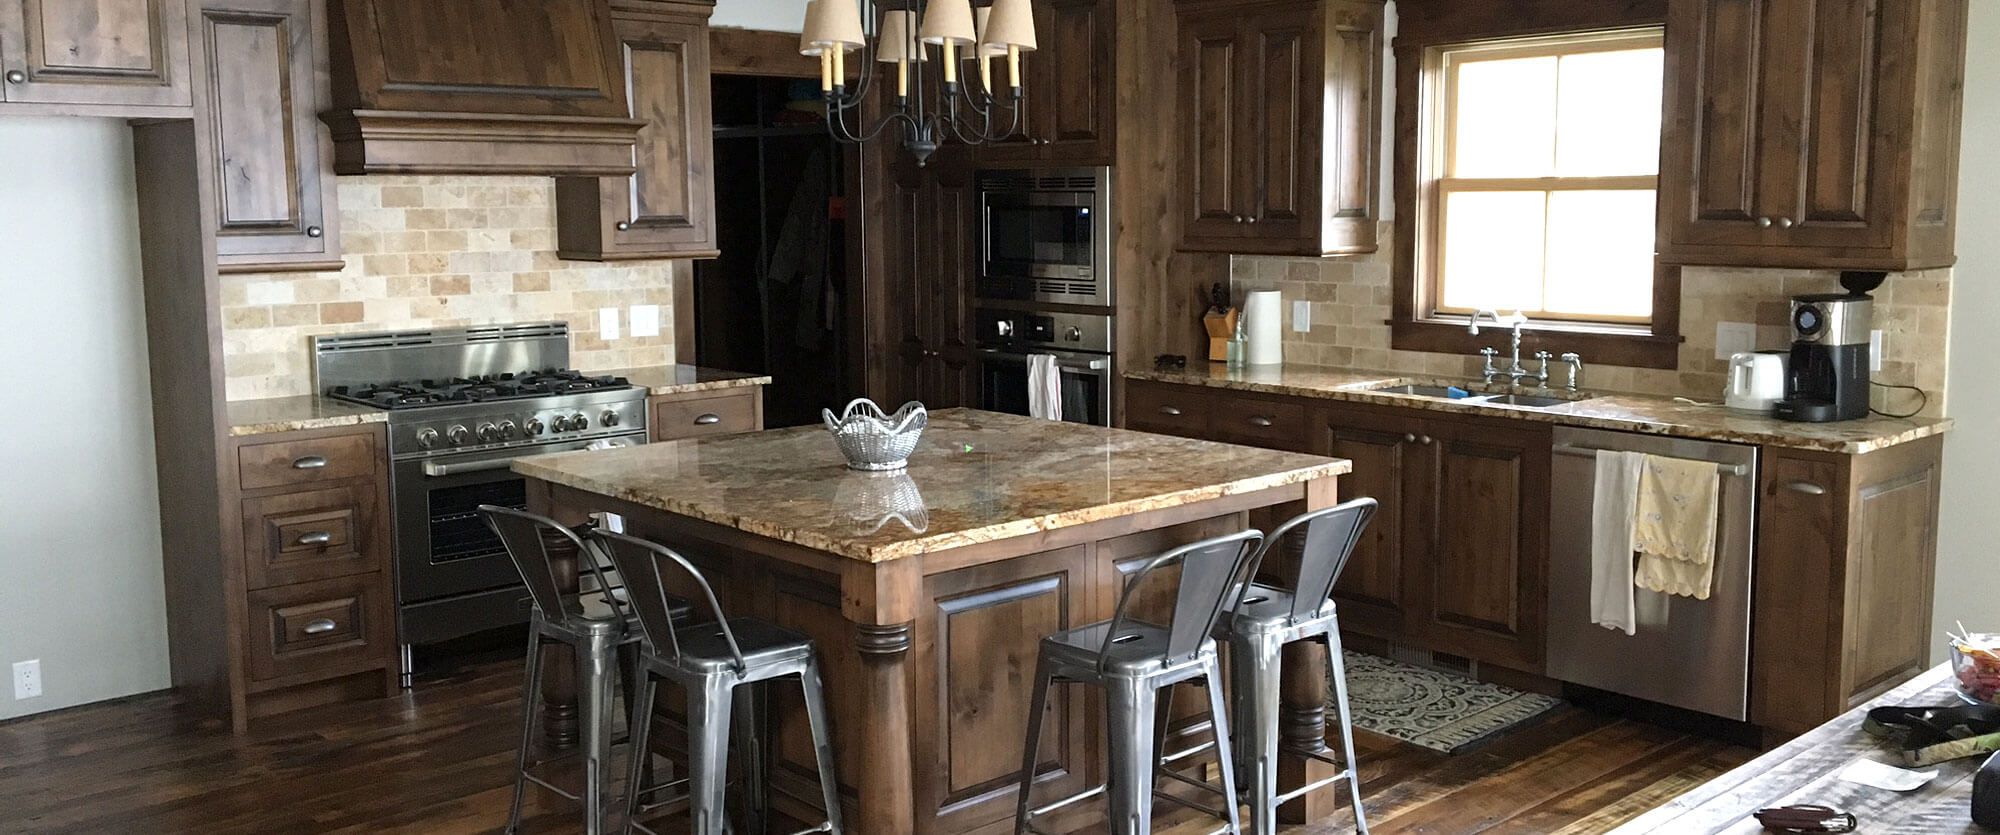 Custom kitchen cabinets made of Alder featuring a square island with corbal legs; designed, built, and installed by finewood Structures of Browerville, MN